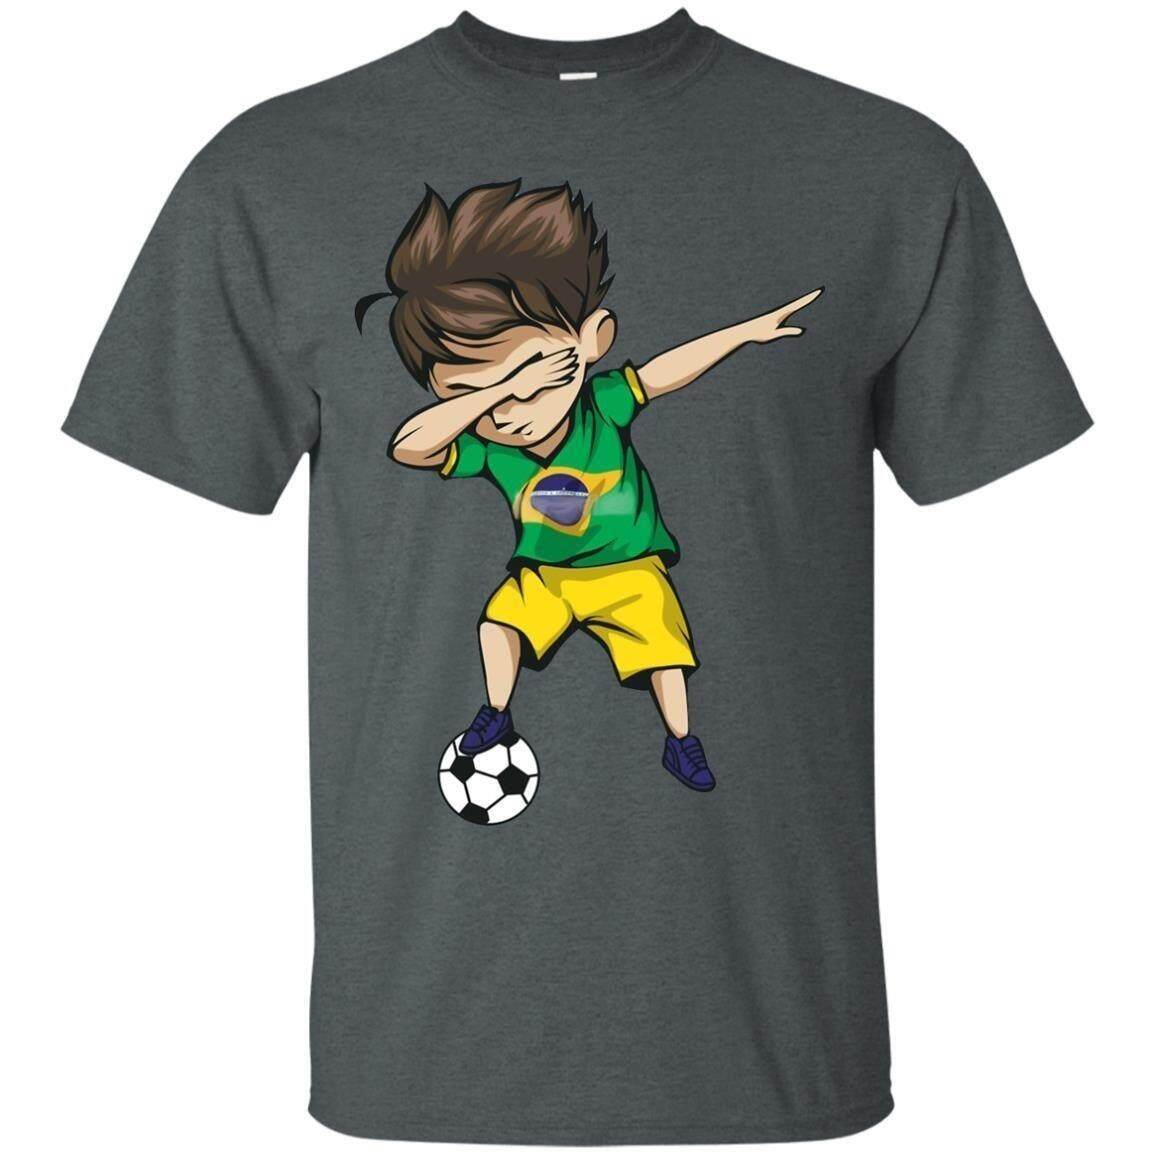 ef7e5f5b2 Details about Dabbing Soccer Boy Brazil Jersey Football Men s T-Shirt